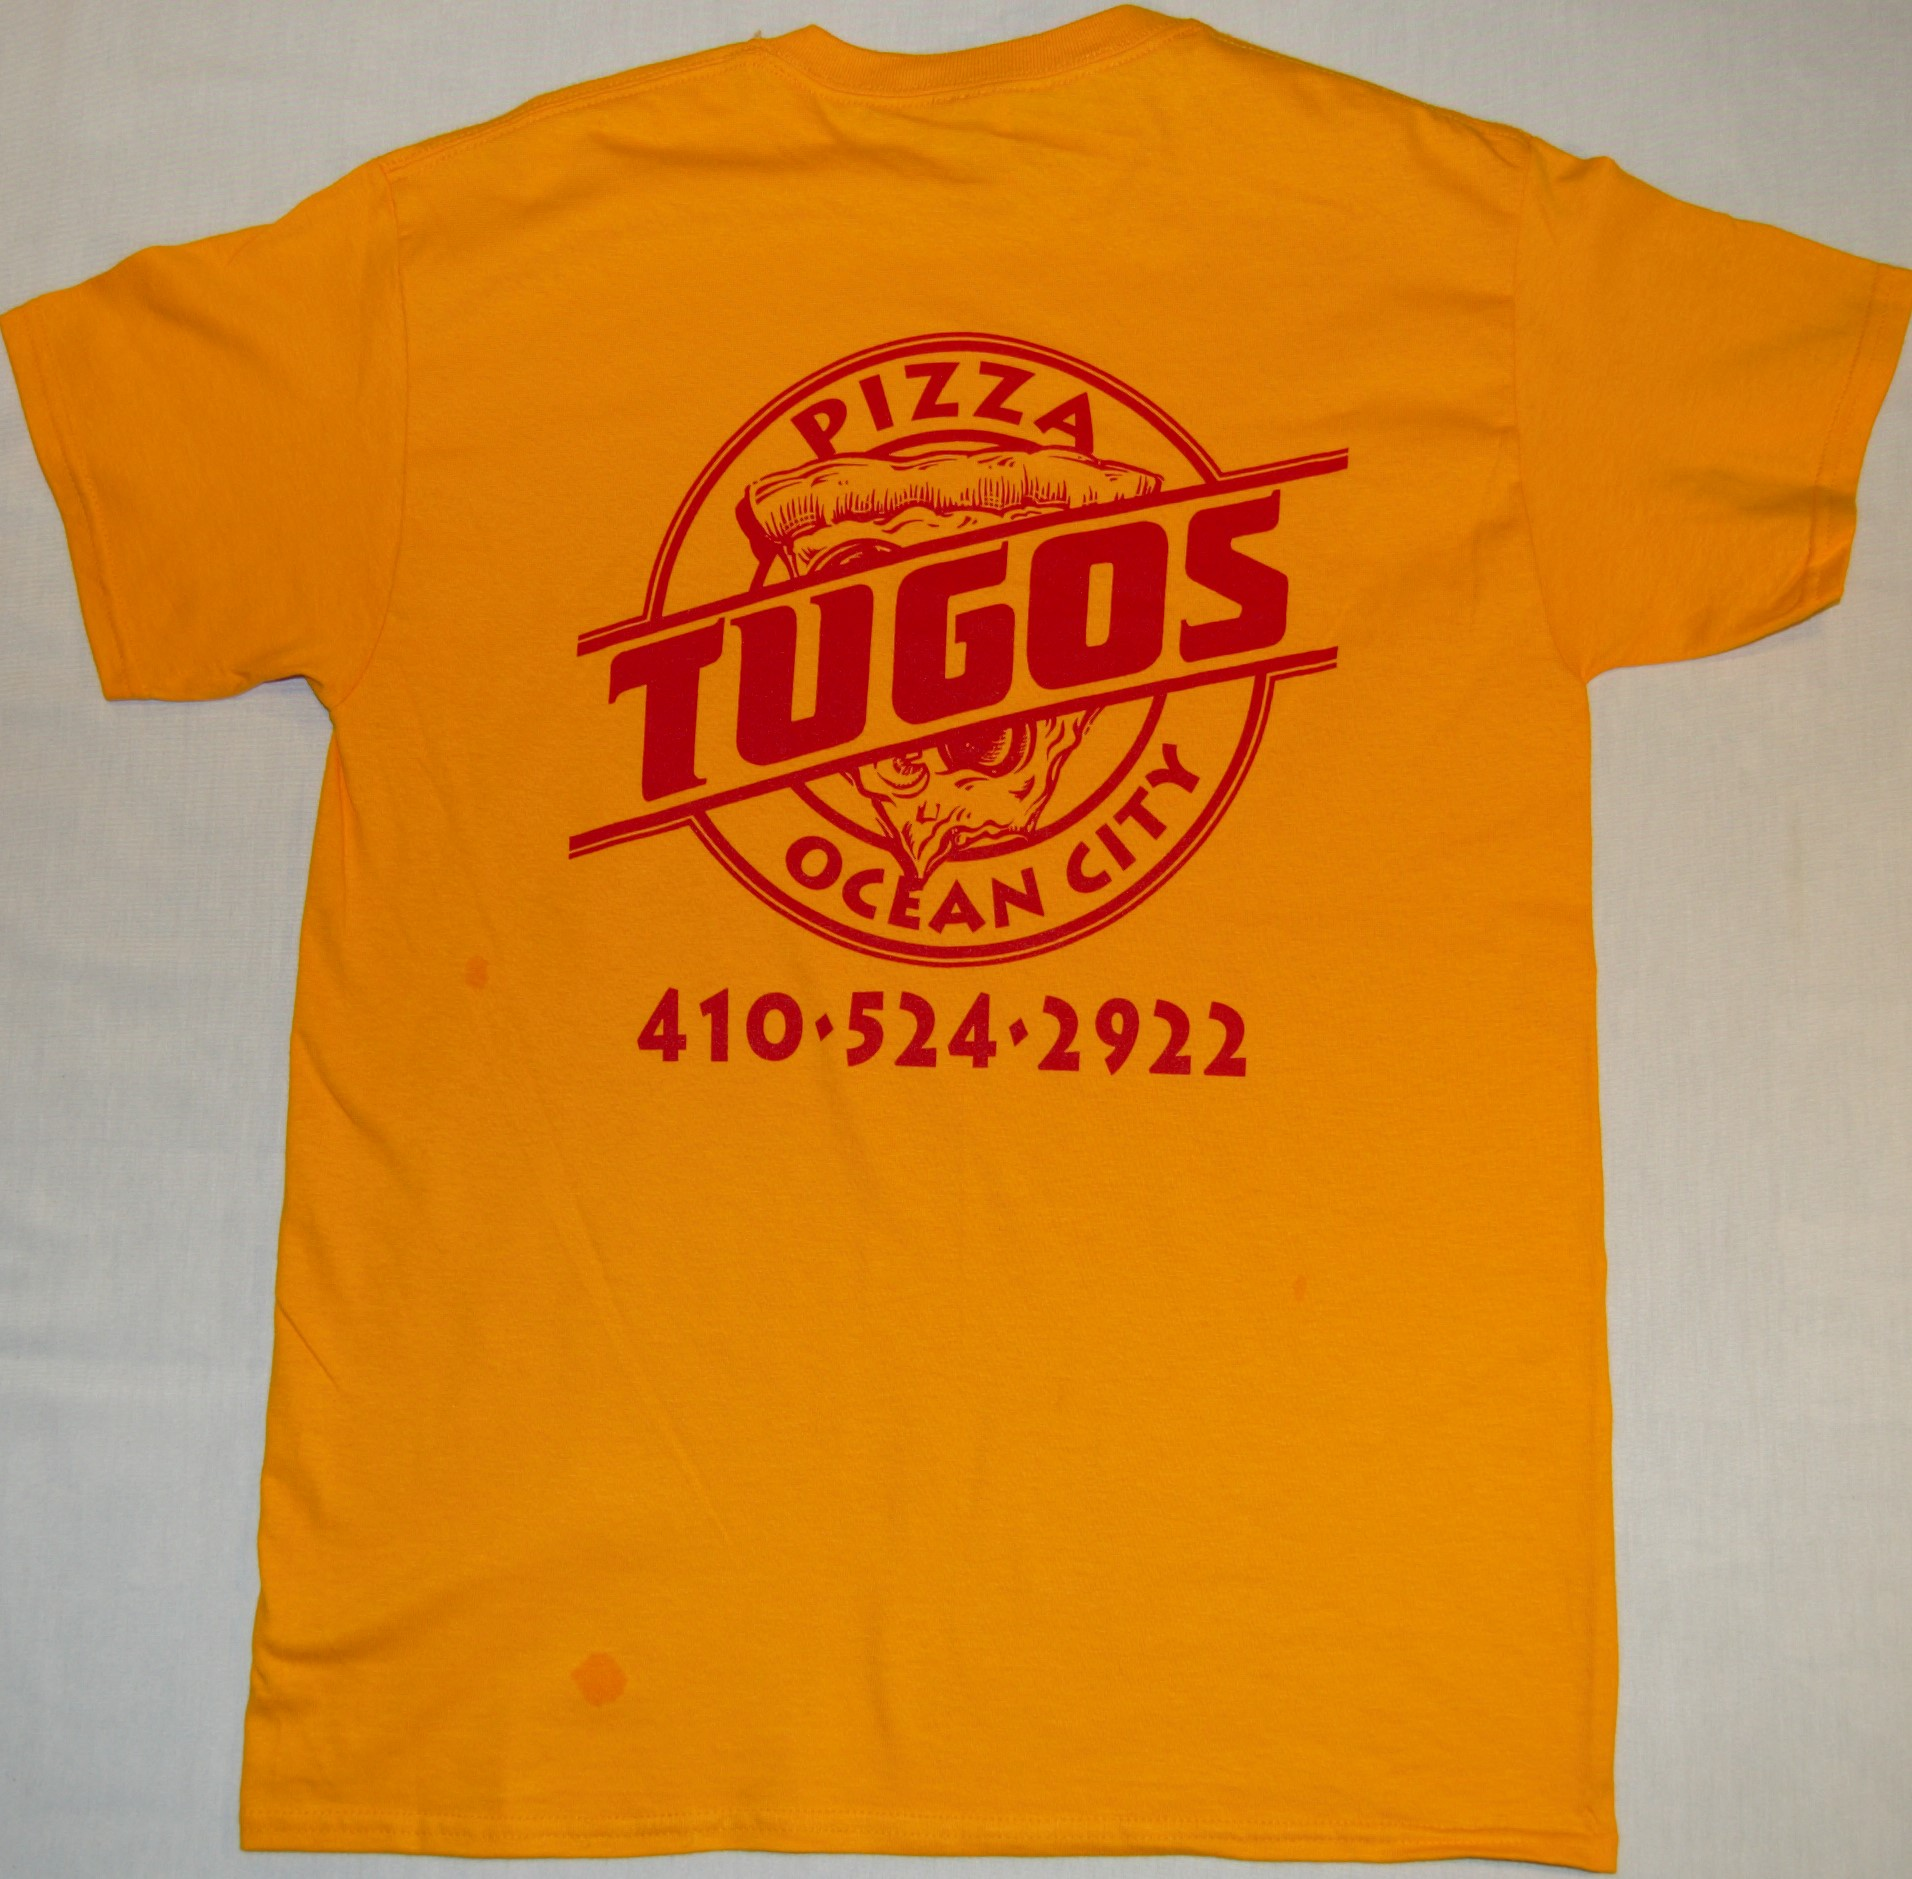 Pizza Tugos Crew Shirt Back